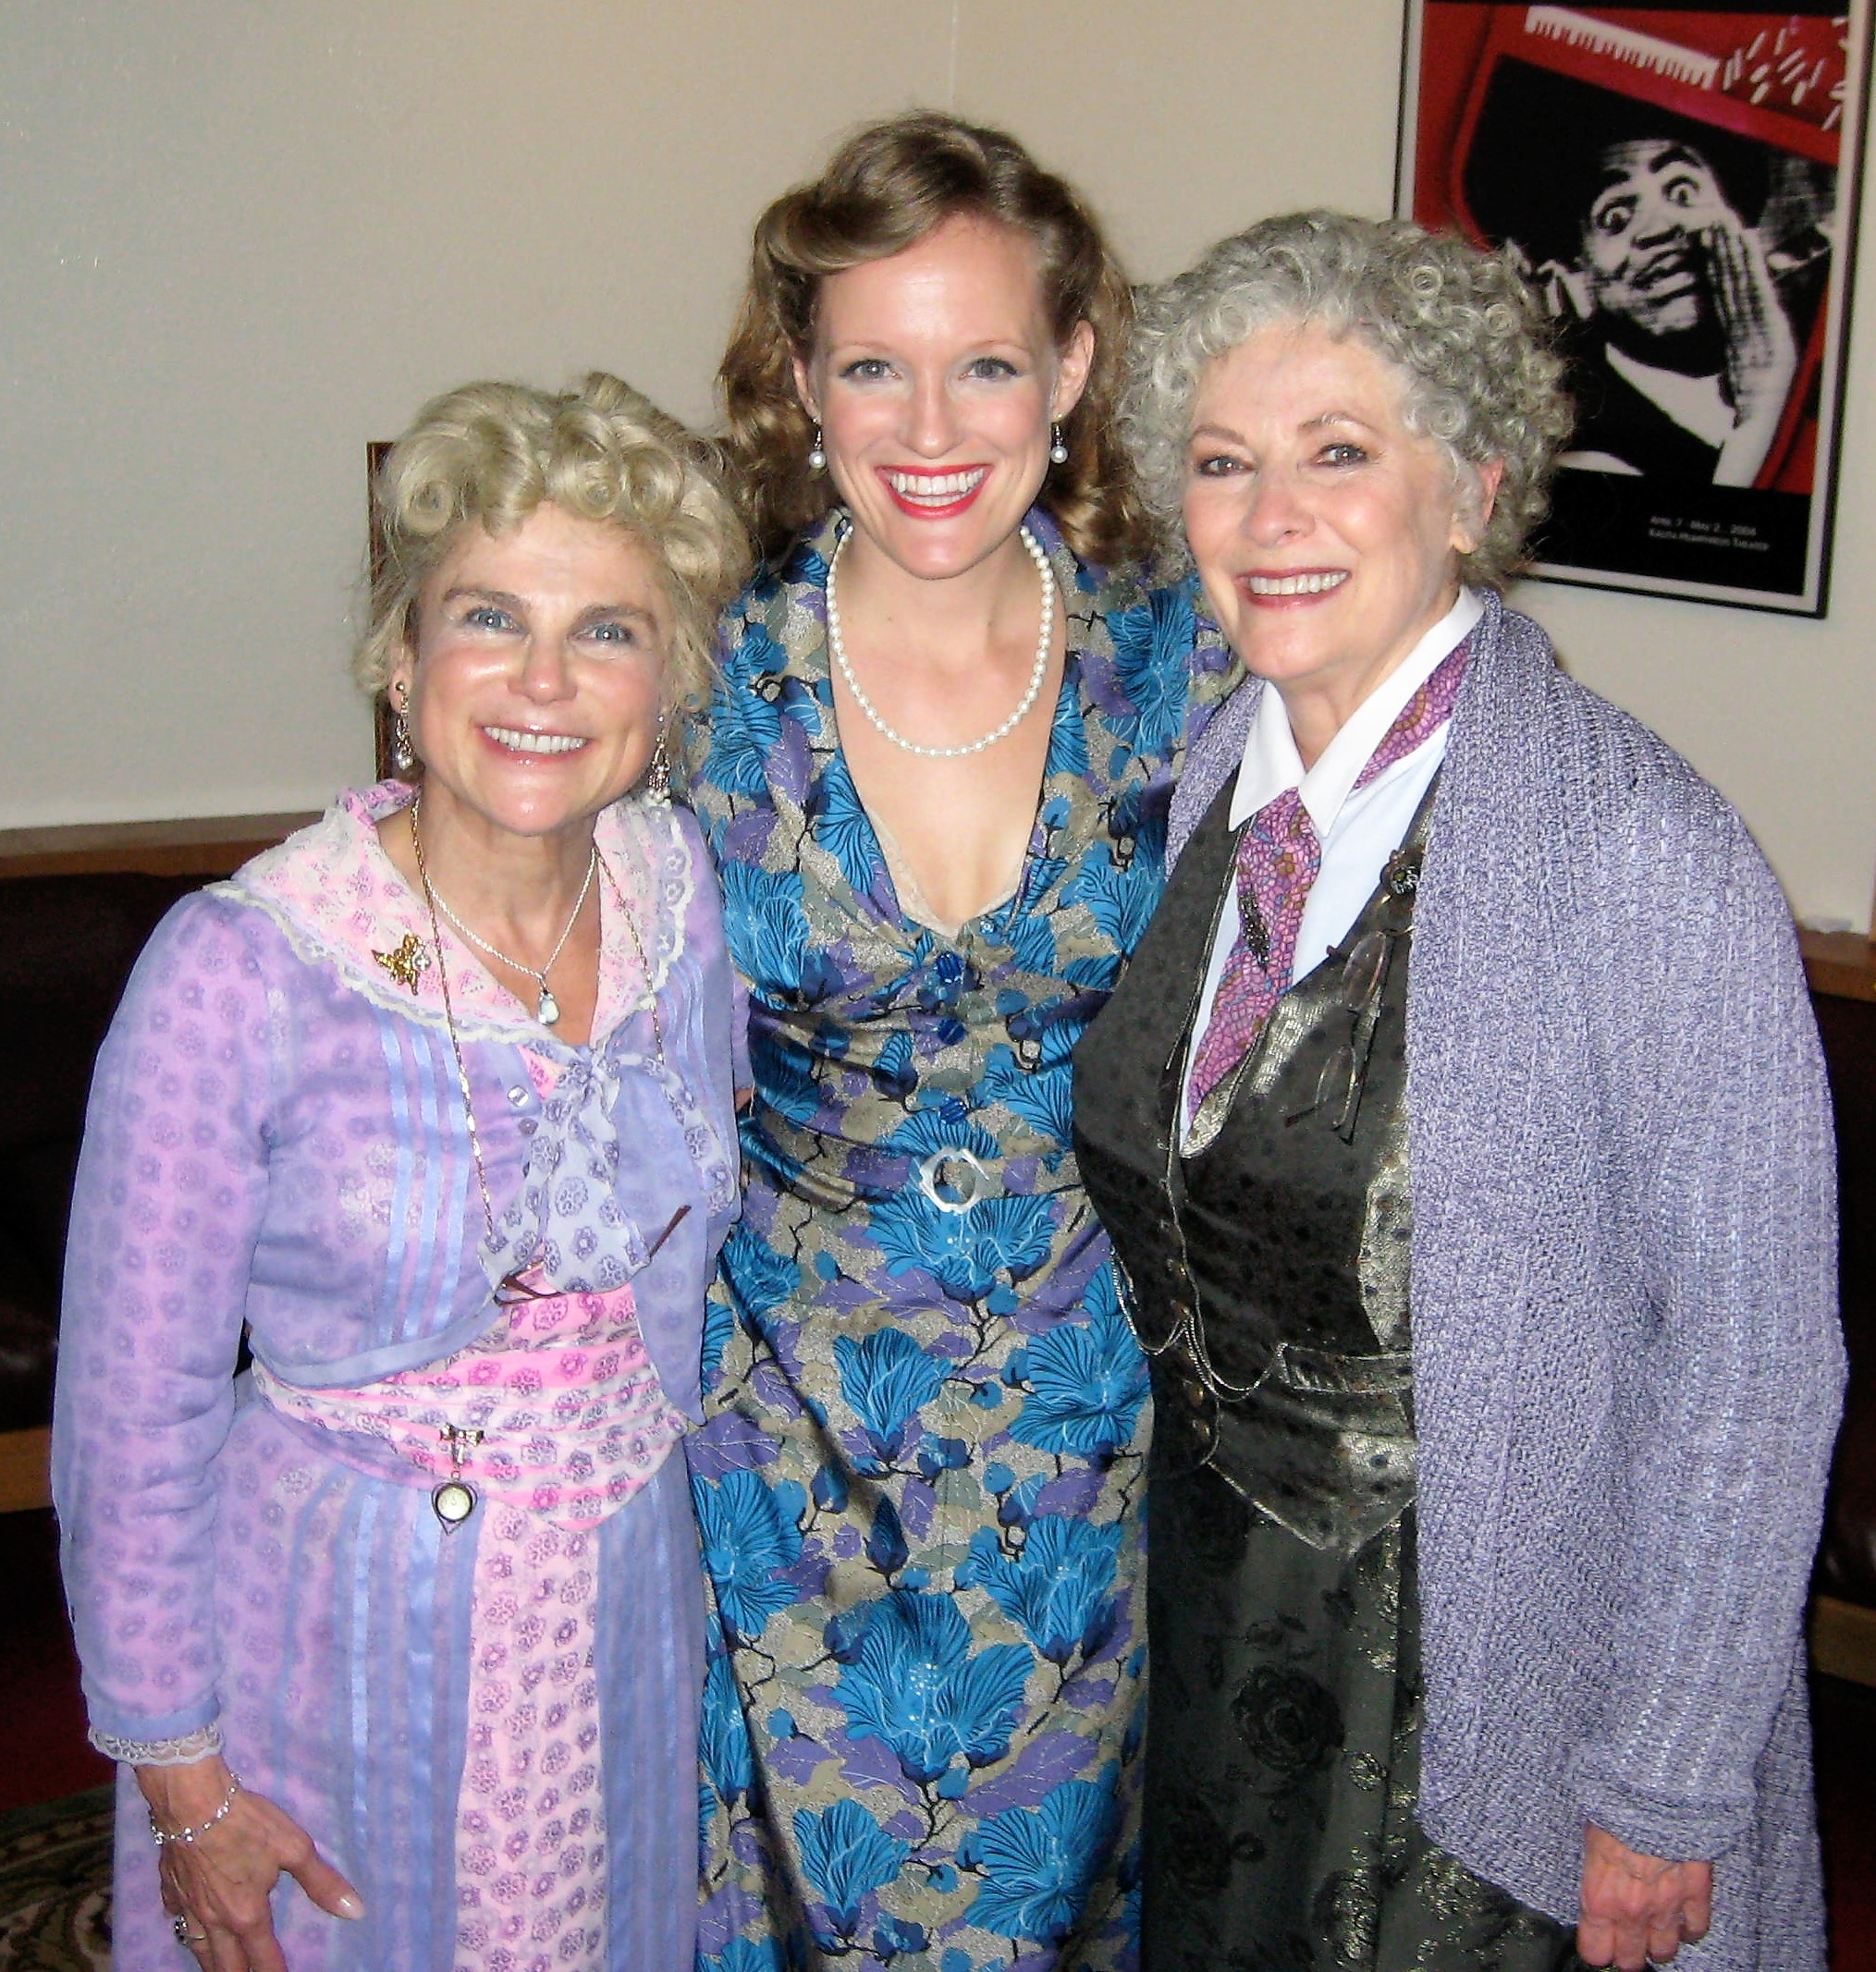 Tovah Feldshuh, Abbey Siegworth, and Betty Buckley backstage in Arsenic & Old Lace at Dallas Theater Center